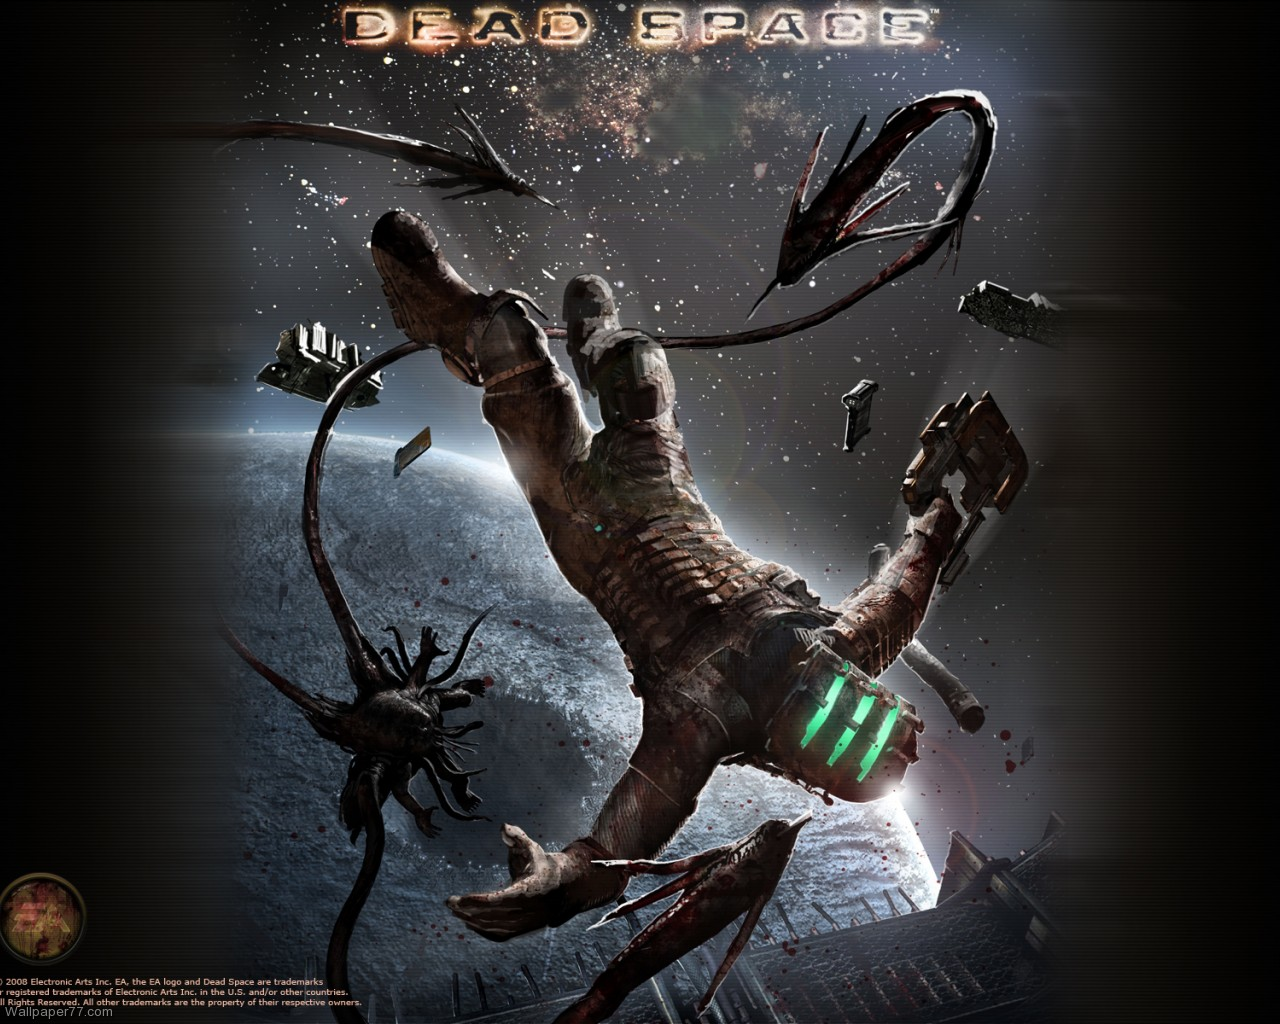 Space Wallpaper 15 dead space wallpapers game wallpapers 1280x1024jpg 1280x1024